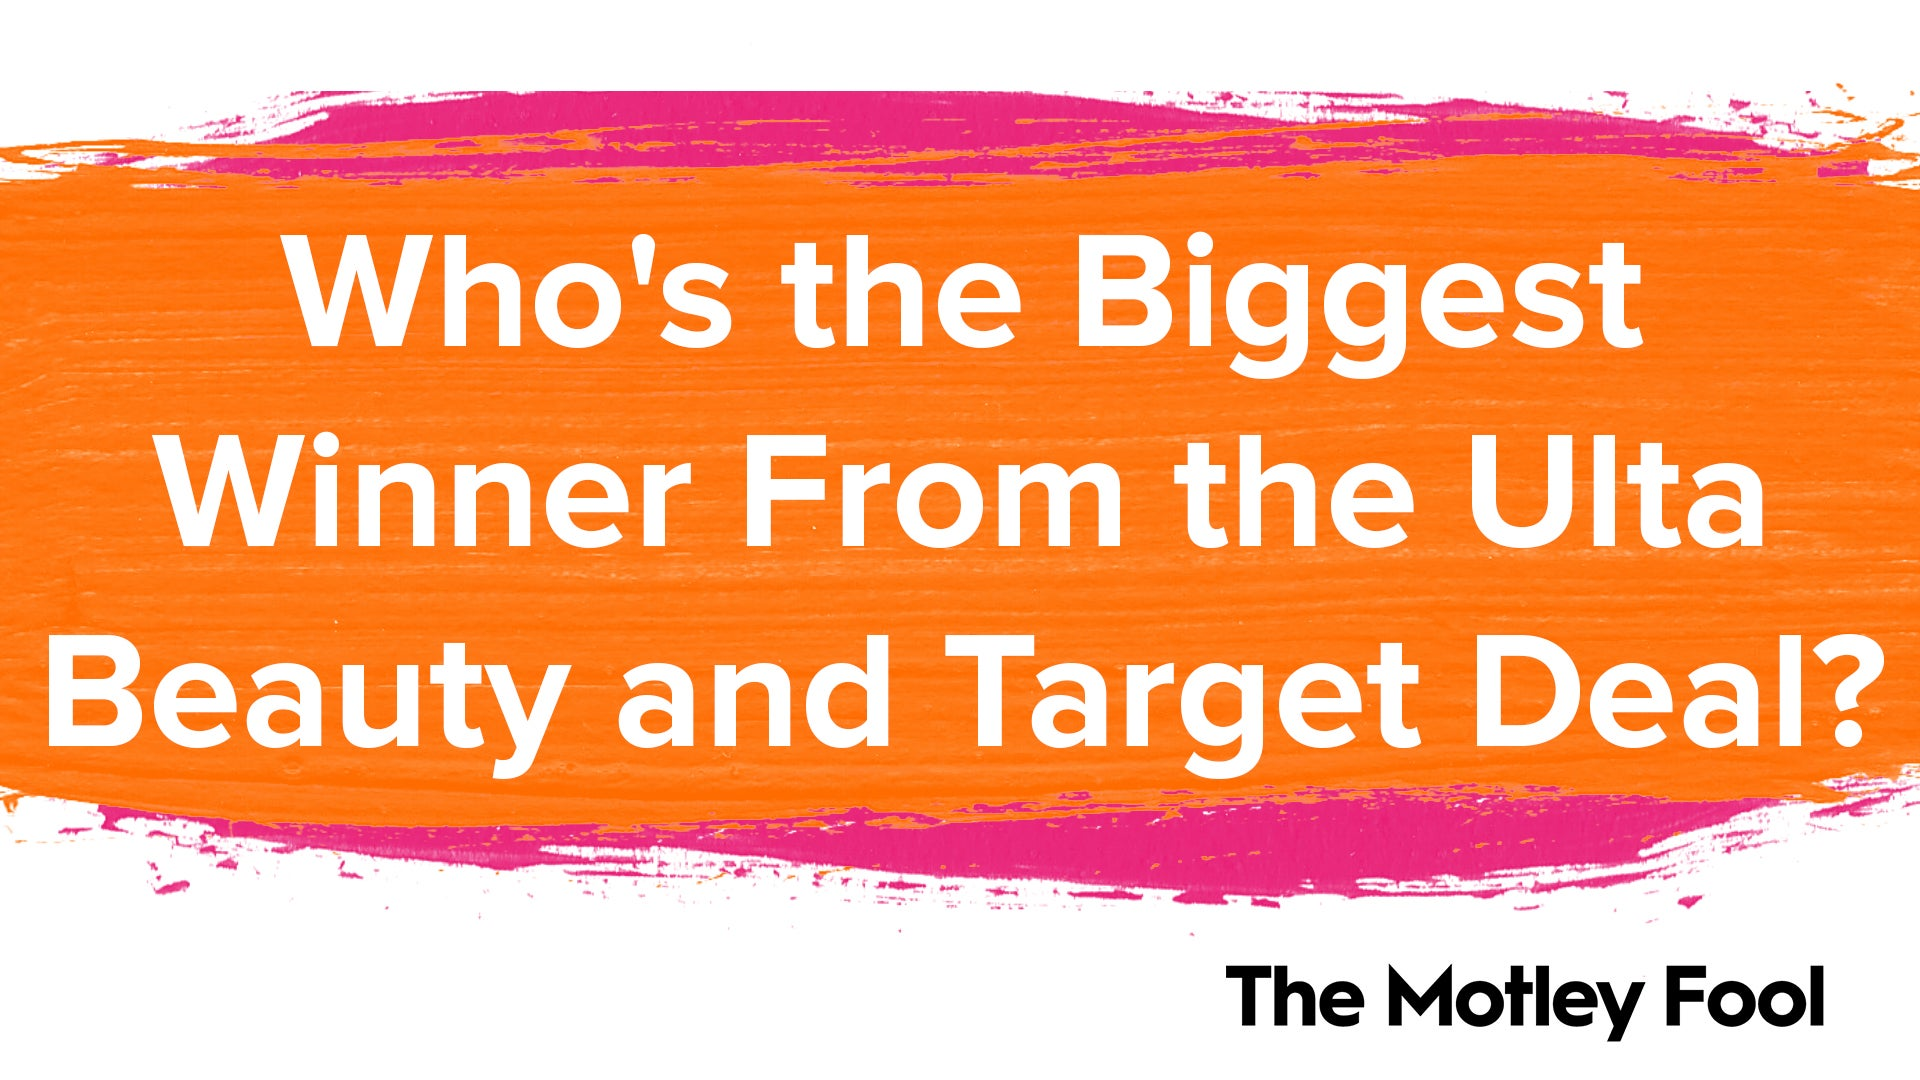 Who's the Biggest Winner From the Ulta Beauty and Target Deal?